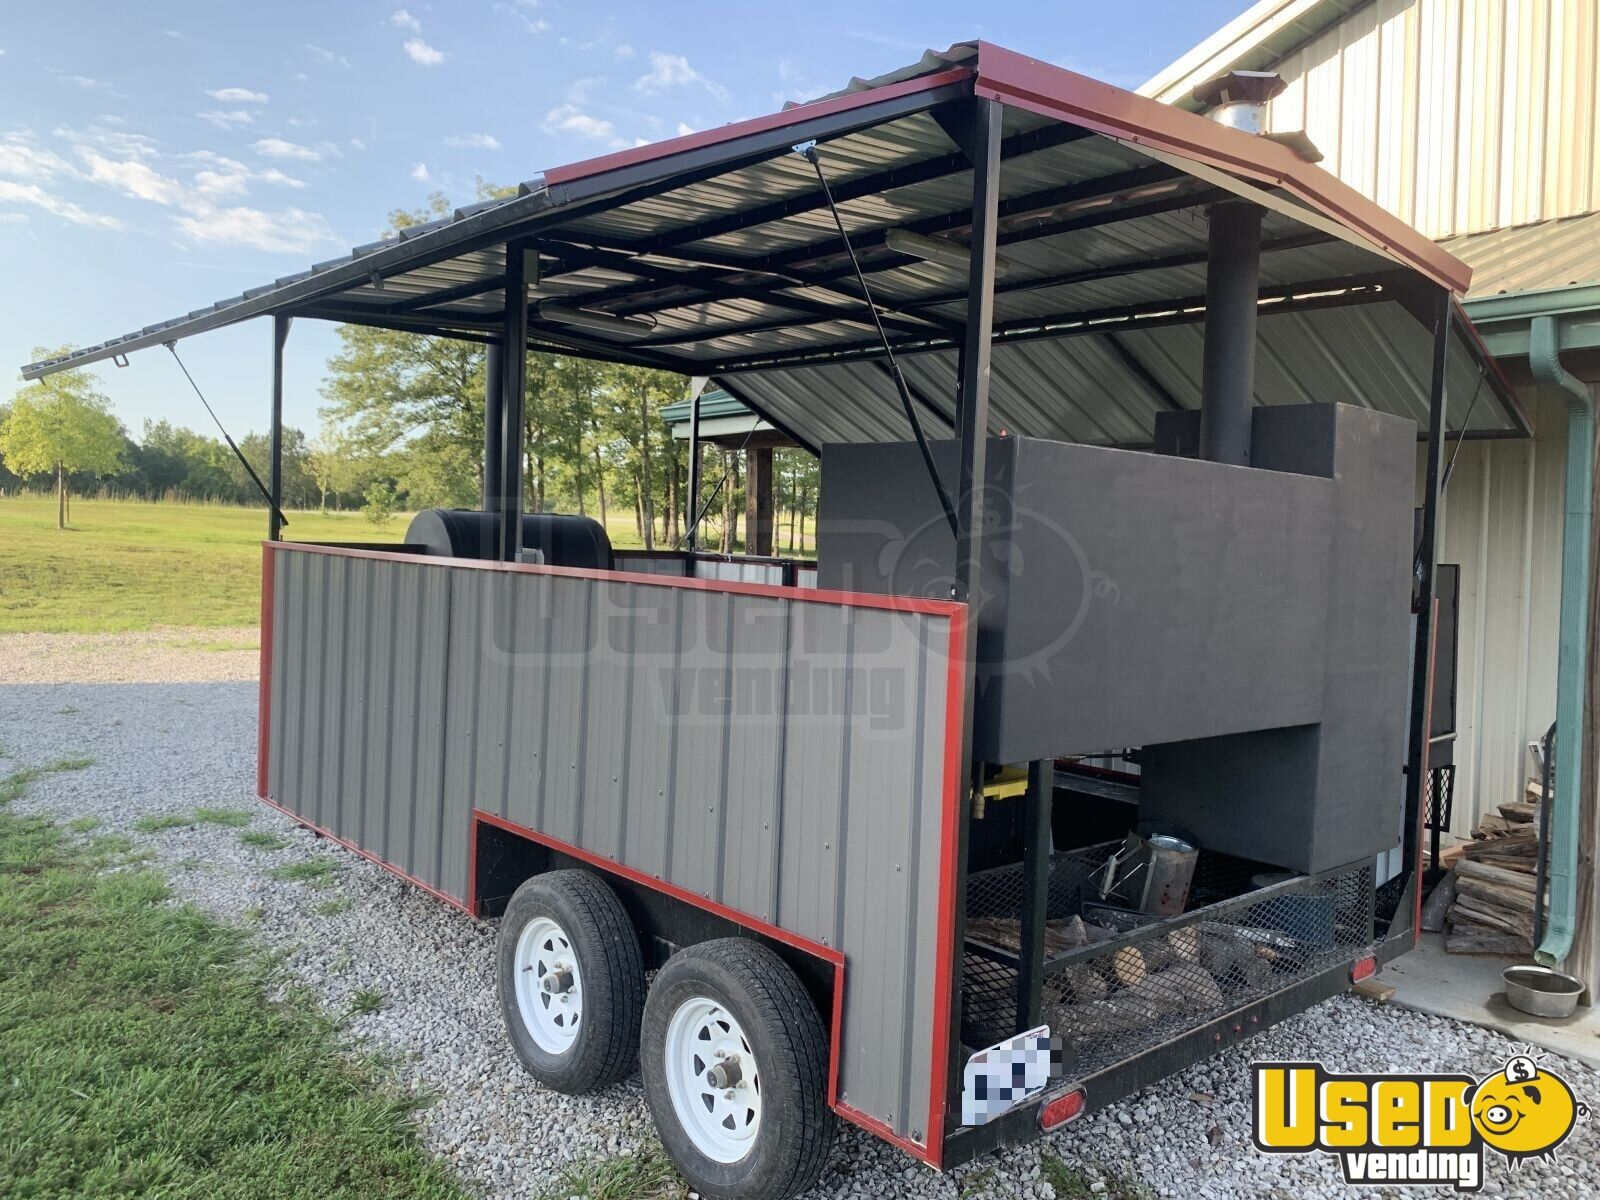 2018 Hiddenvalley Smokers Open Bbq Smoker Trailer Char Grill Missouri for Sale - 2